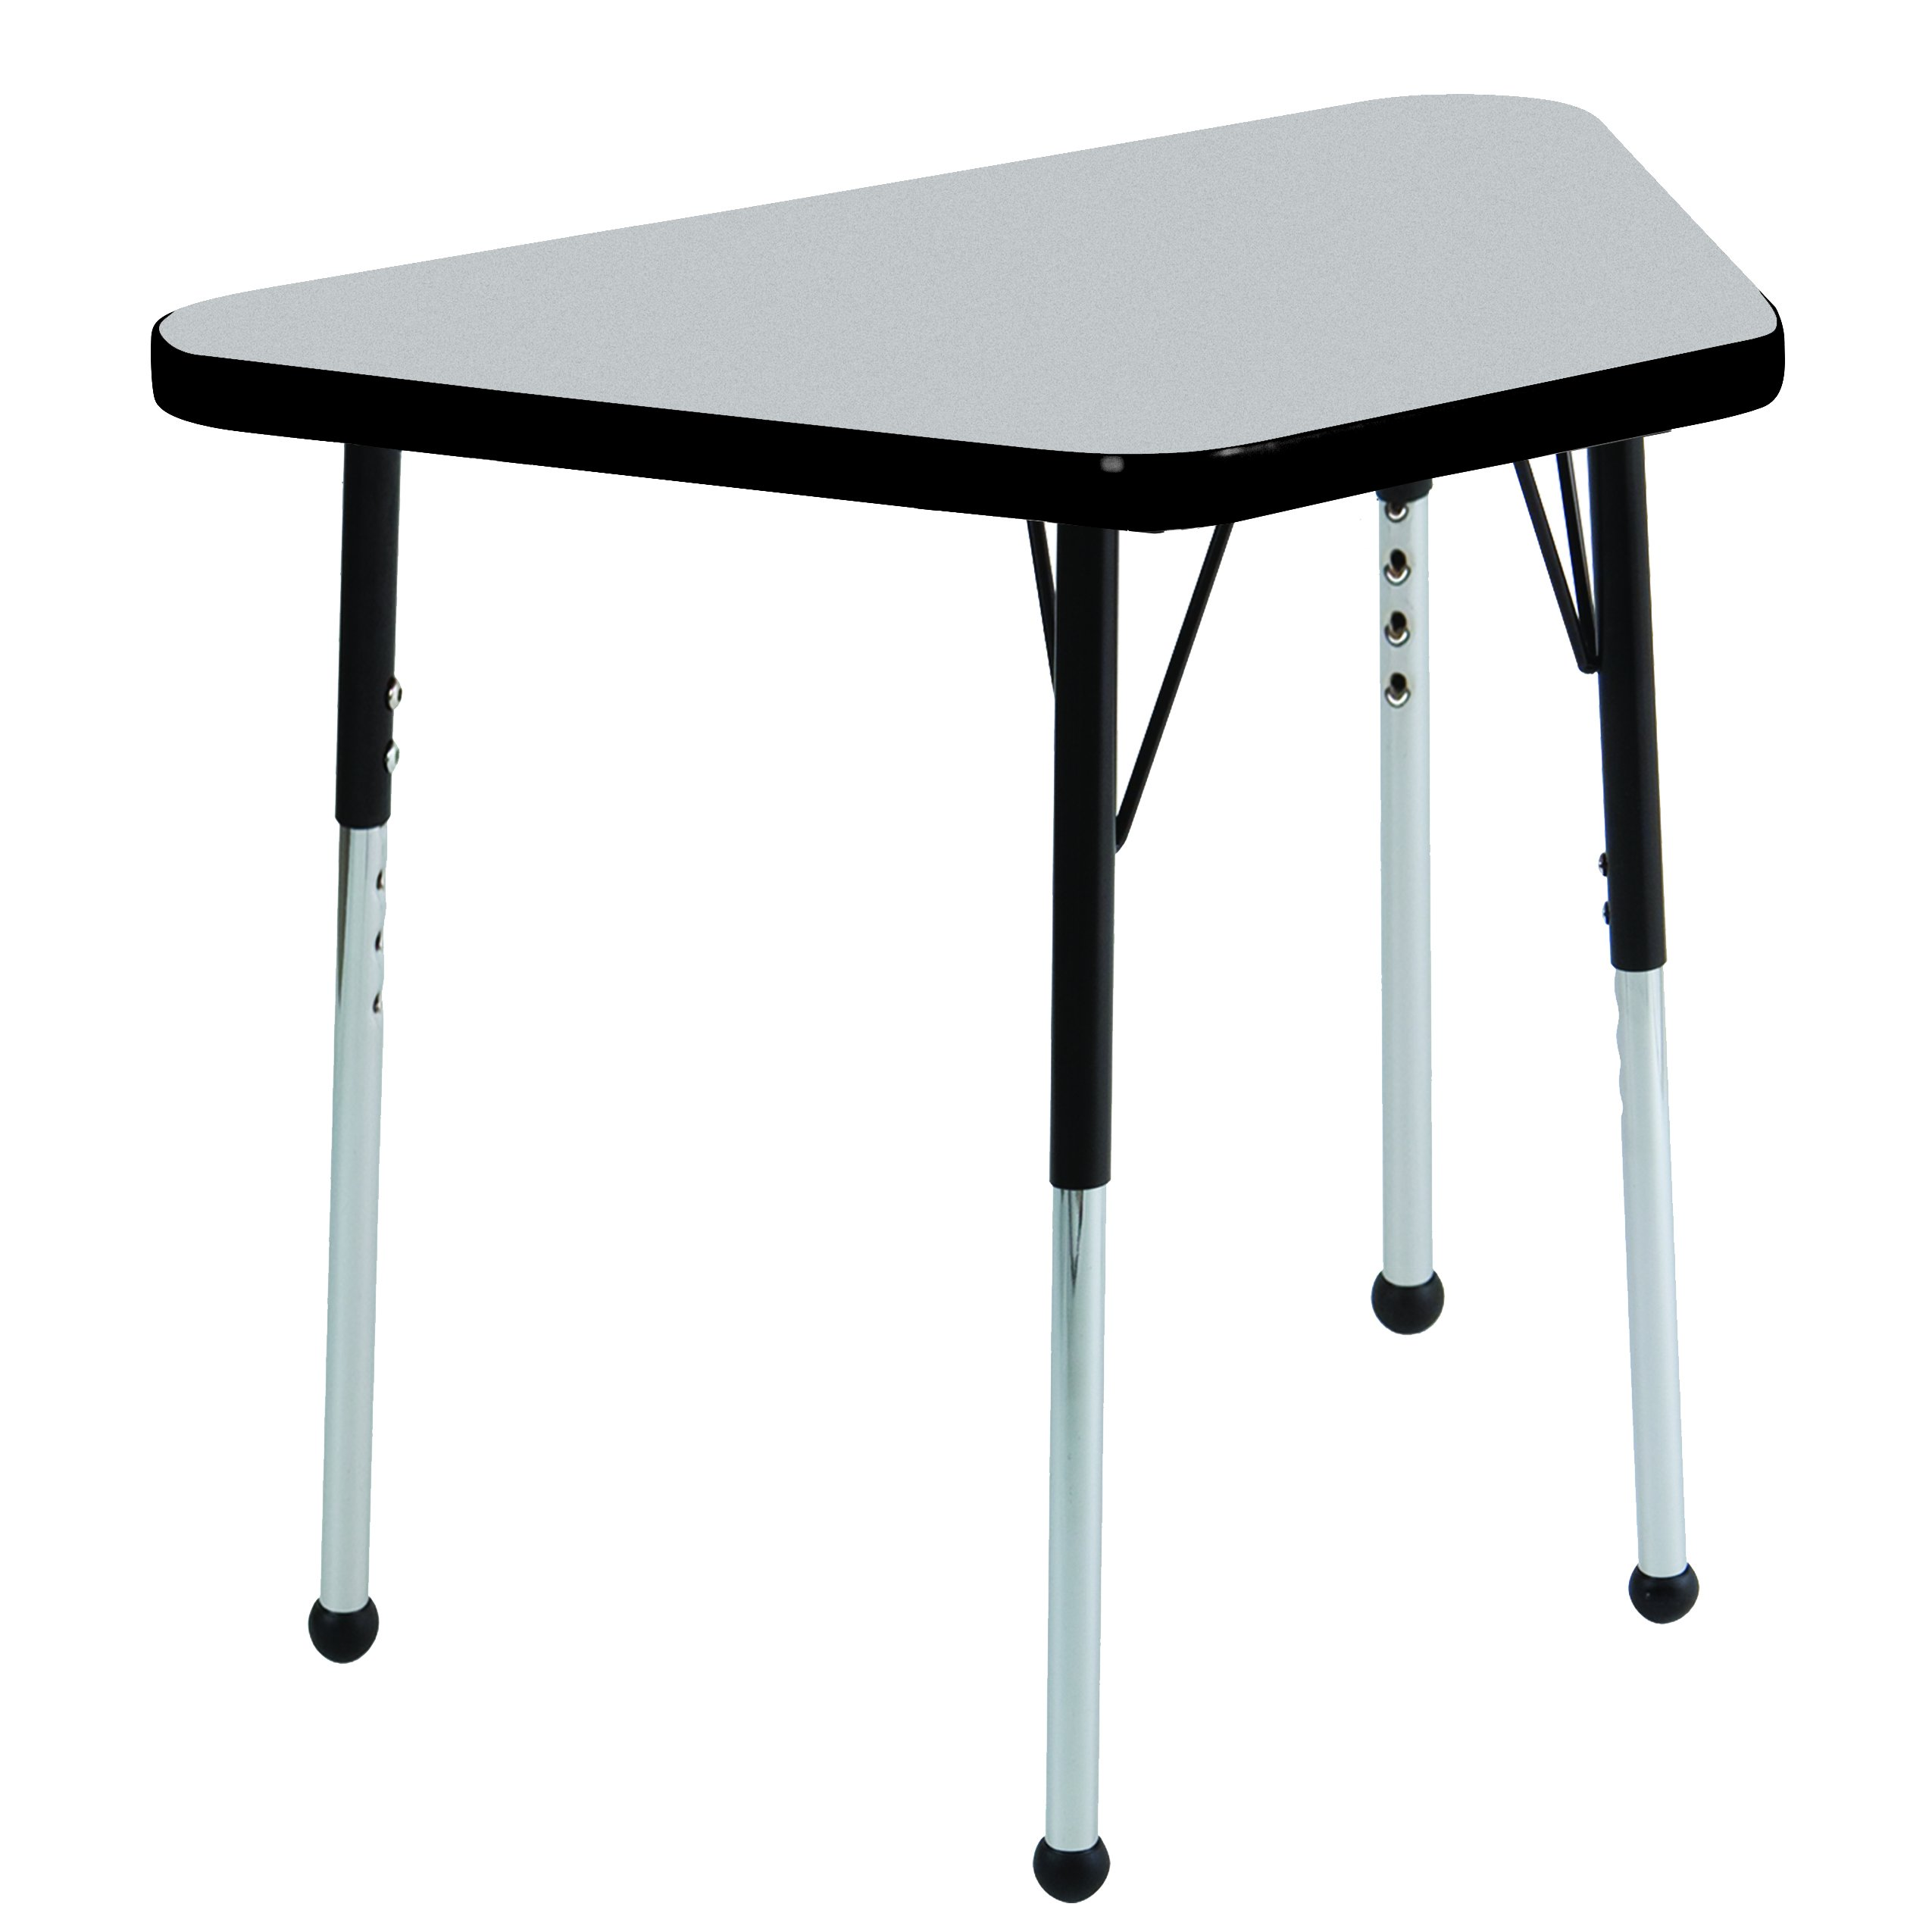 ECR4Kids Premium Thermo-Fused 18'' x 30'' Trapezoid School Activity Table, Standard Legs w/Ball Glides, Adjustable Height 19-30 inch (Grey/Black)